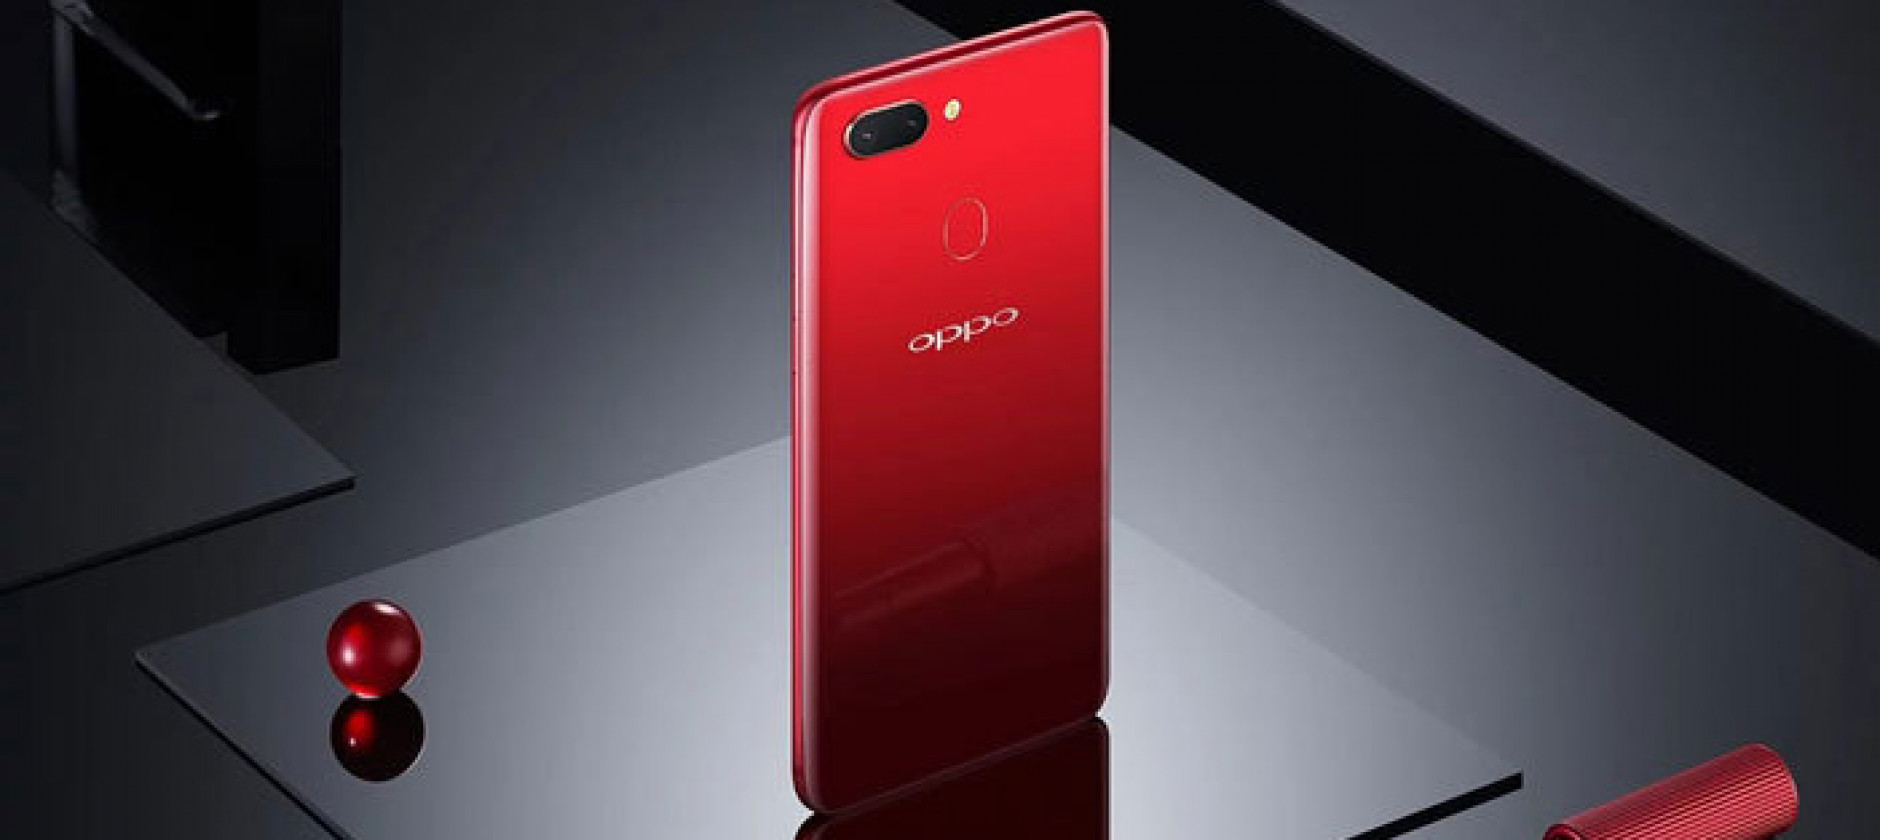 OnePlus 6 come Oppo R15?